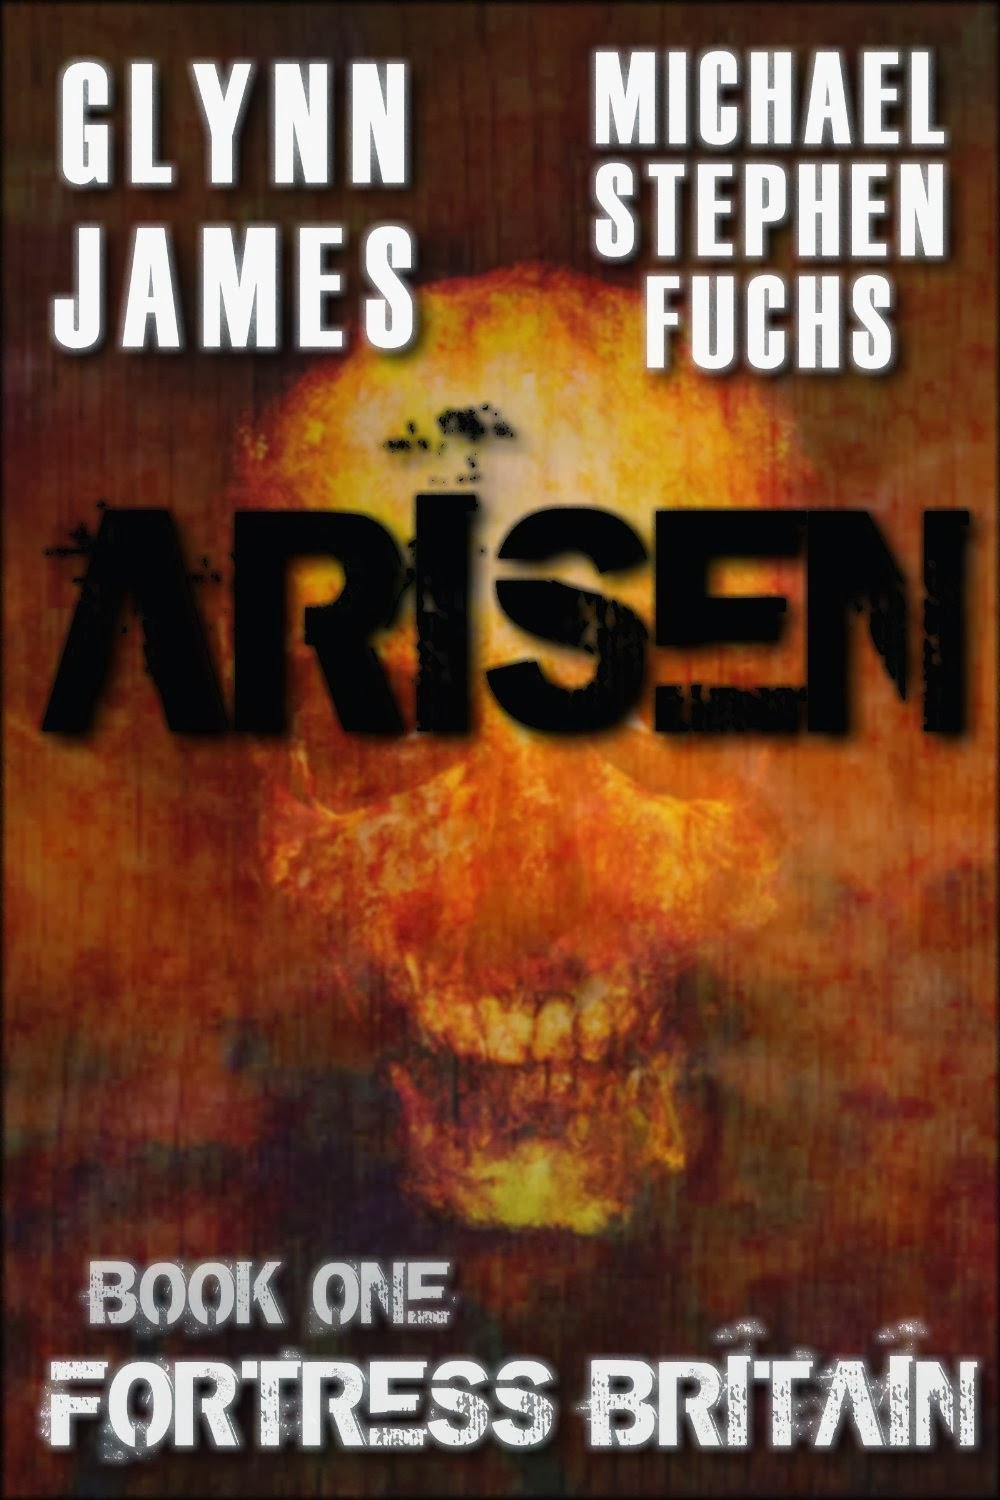 http://www.amazon.com/Arisen-Book-One-Fortress-Britain-ebook/dp/B008TQ0T8A/?tag=juleromans-20